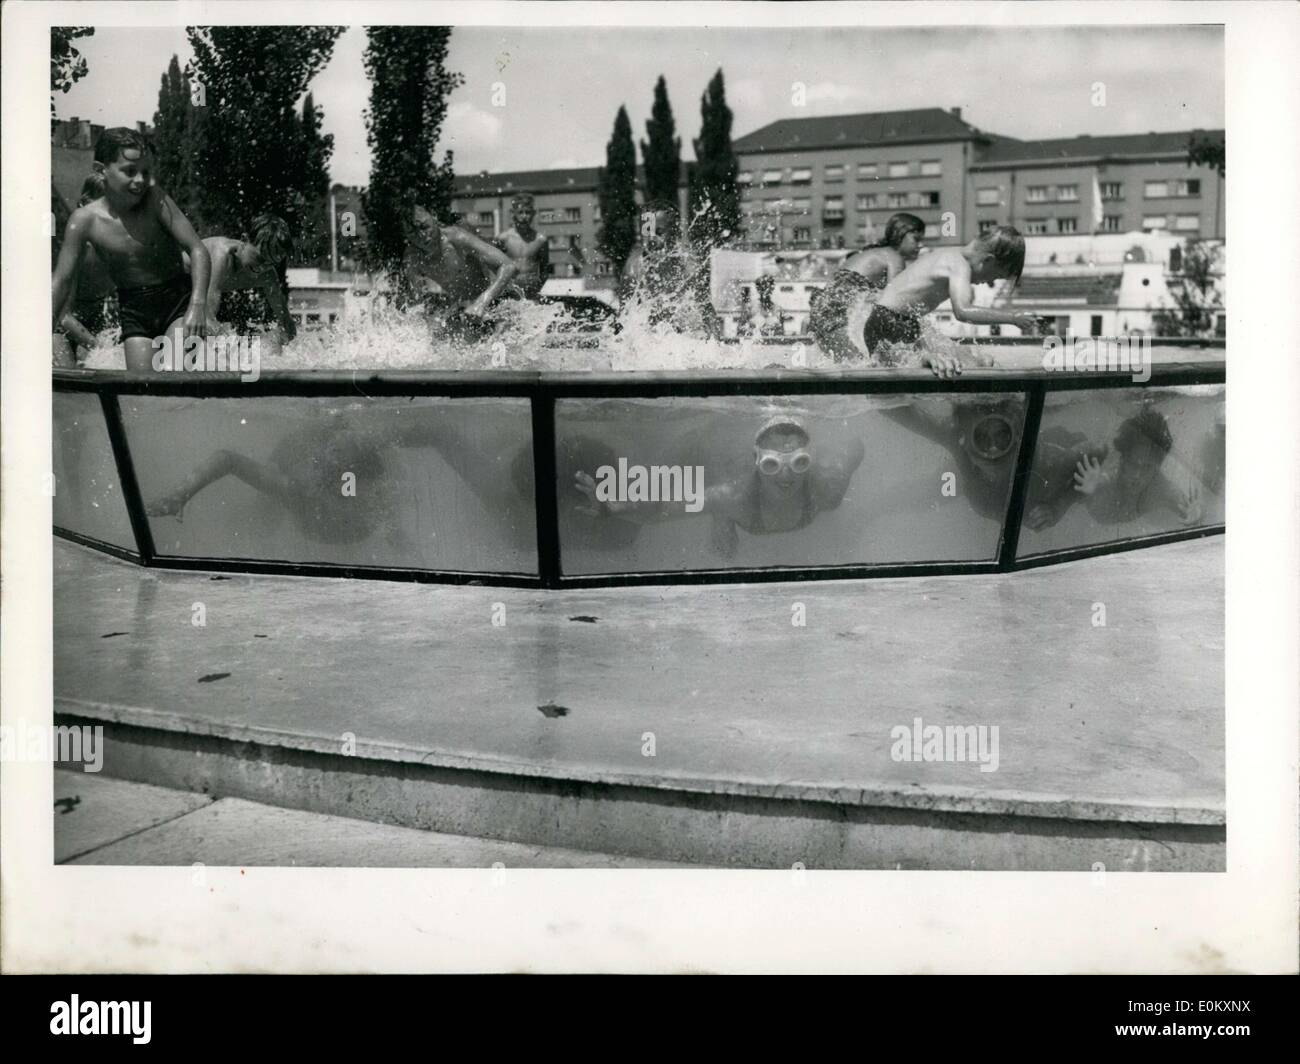 Pool Abdeckung Plexiglas Plexiglass Stockfotos Plexiglass Bilder Alamy